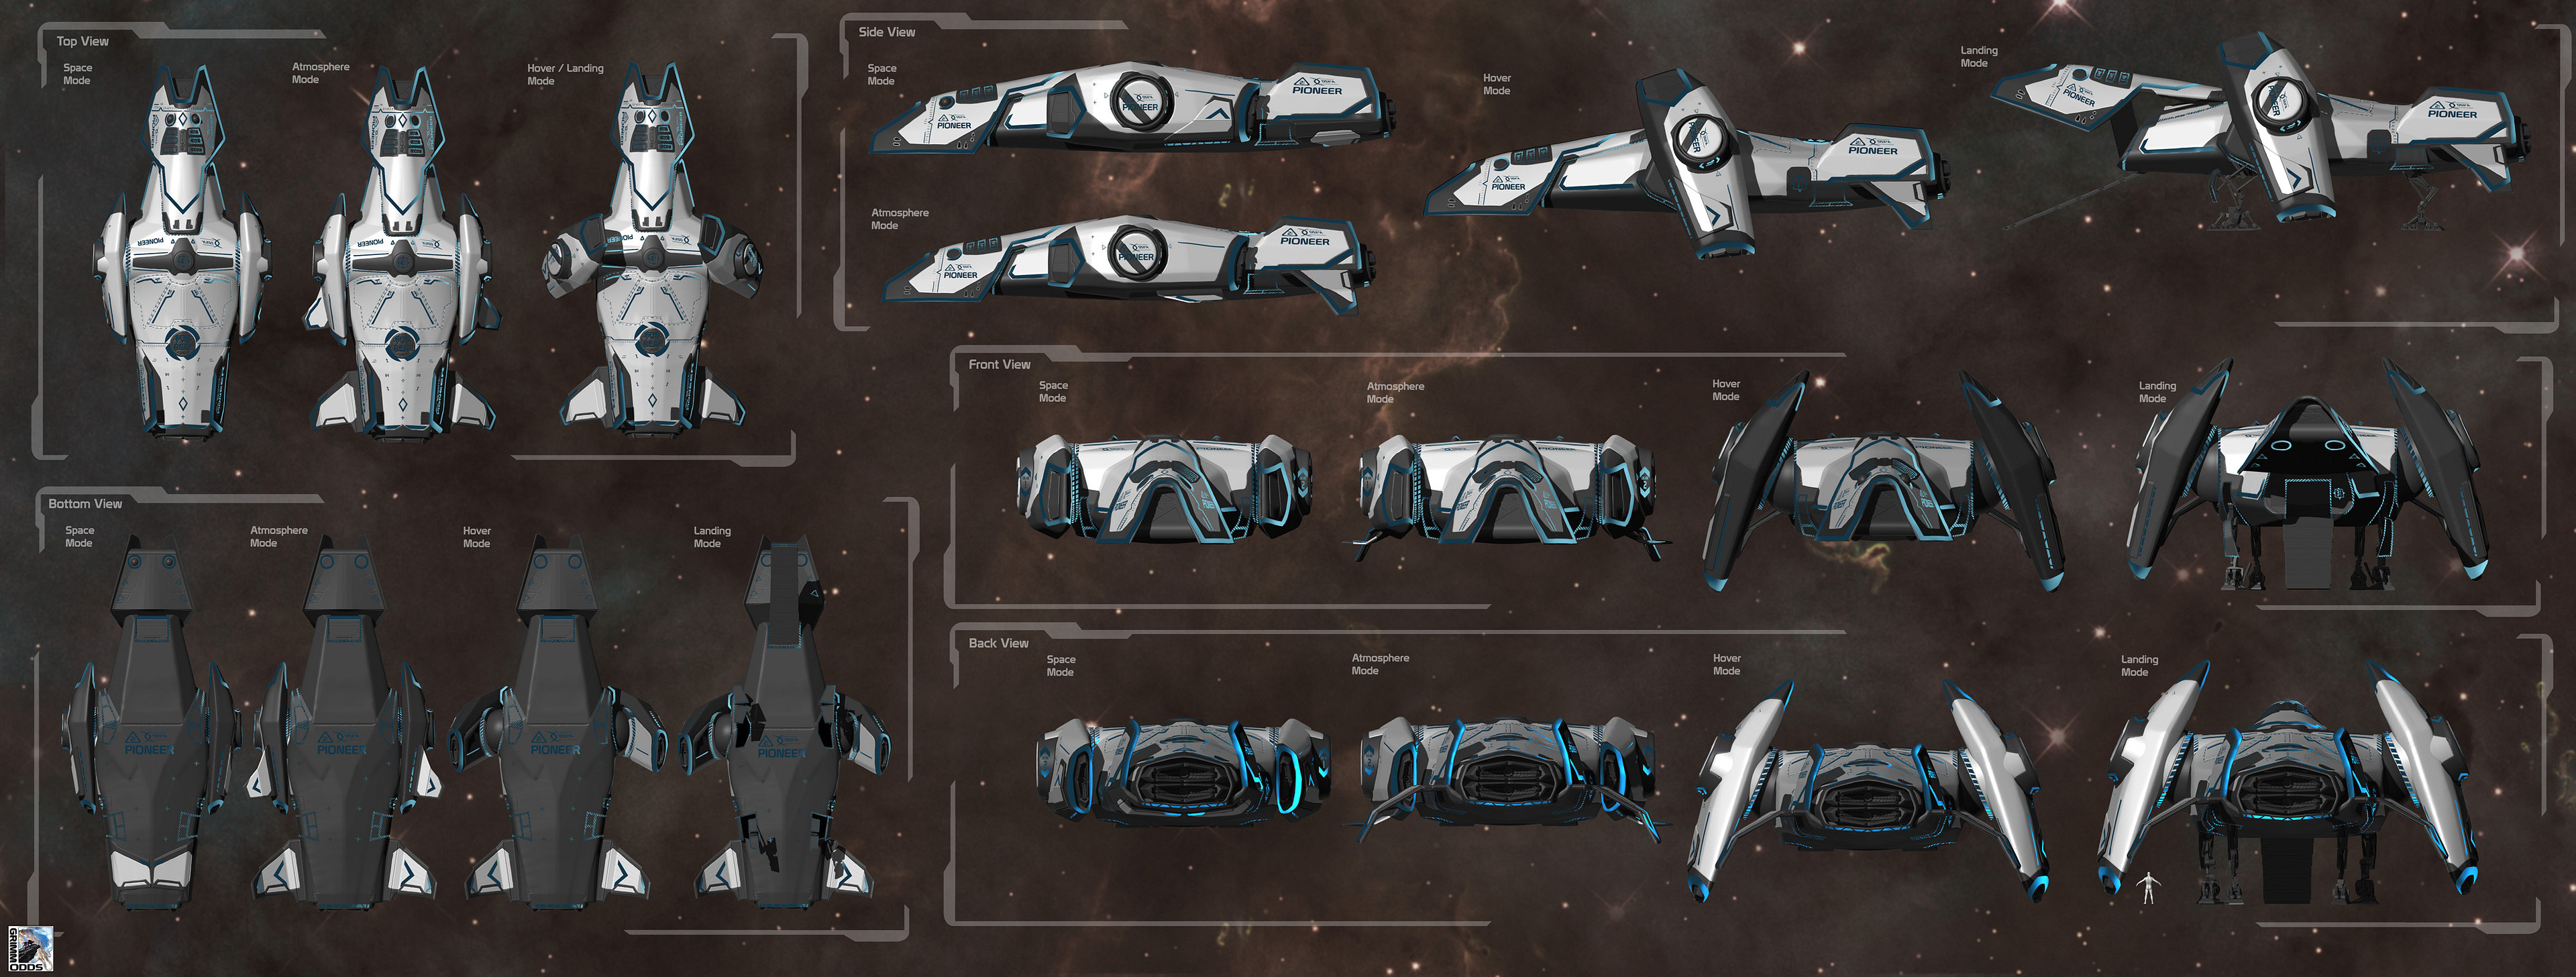 Grimm Odds - Shuttle - Orthographic views